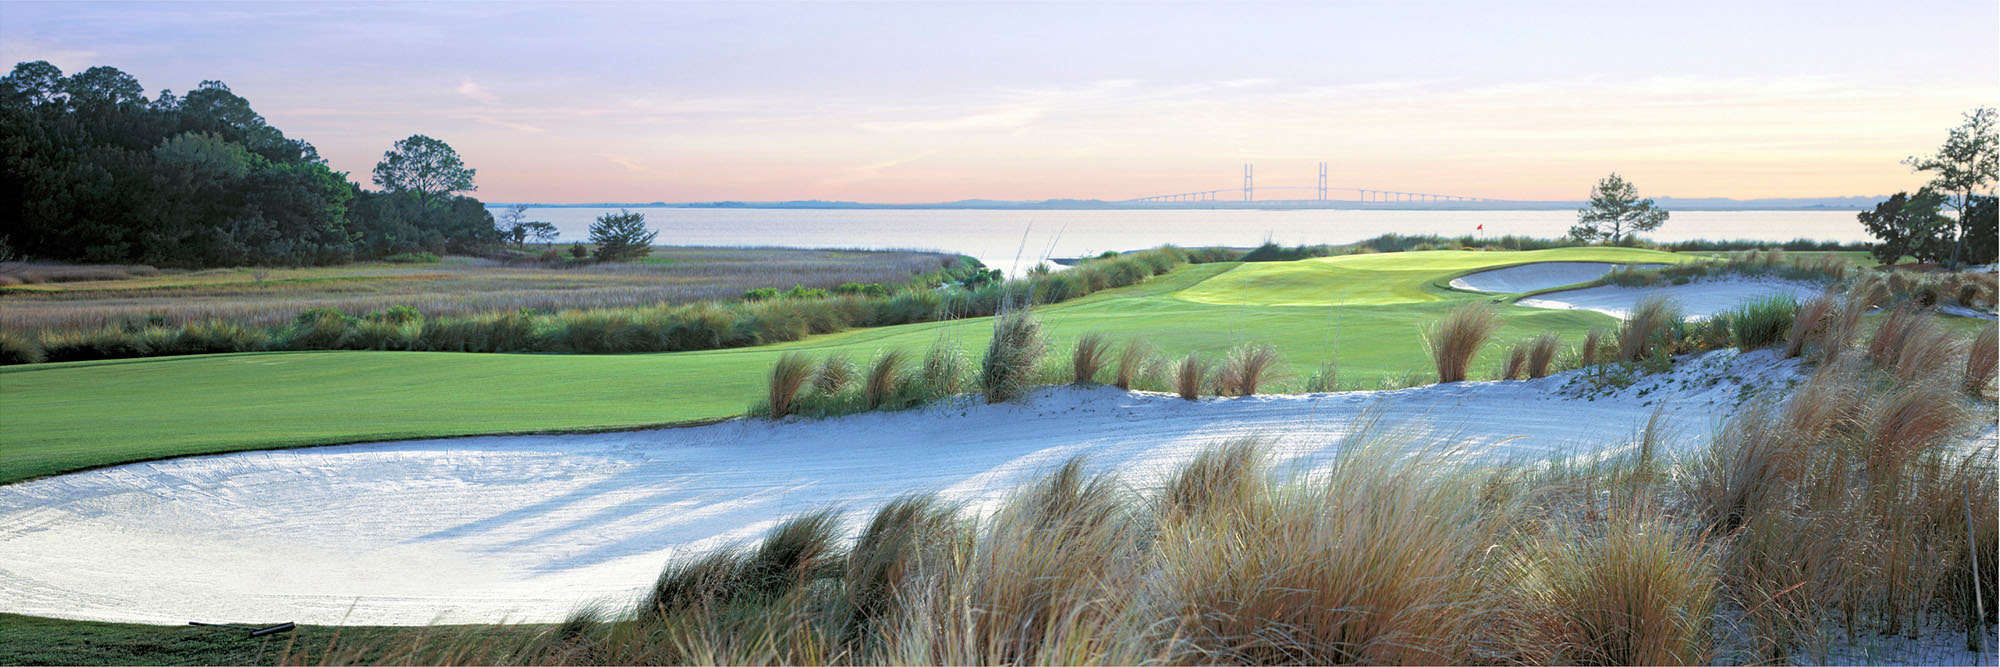 Golf Course Image - Sea Island Seaside No. 13